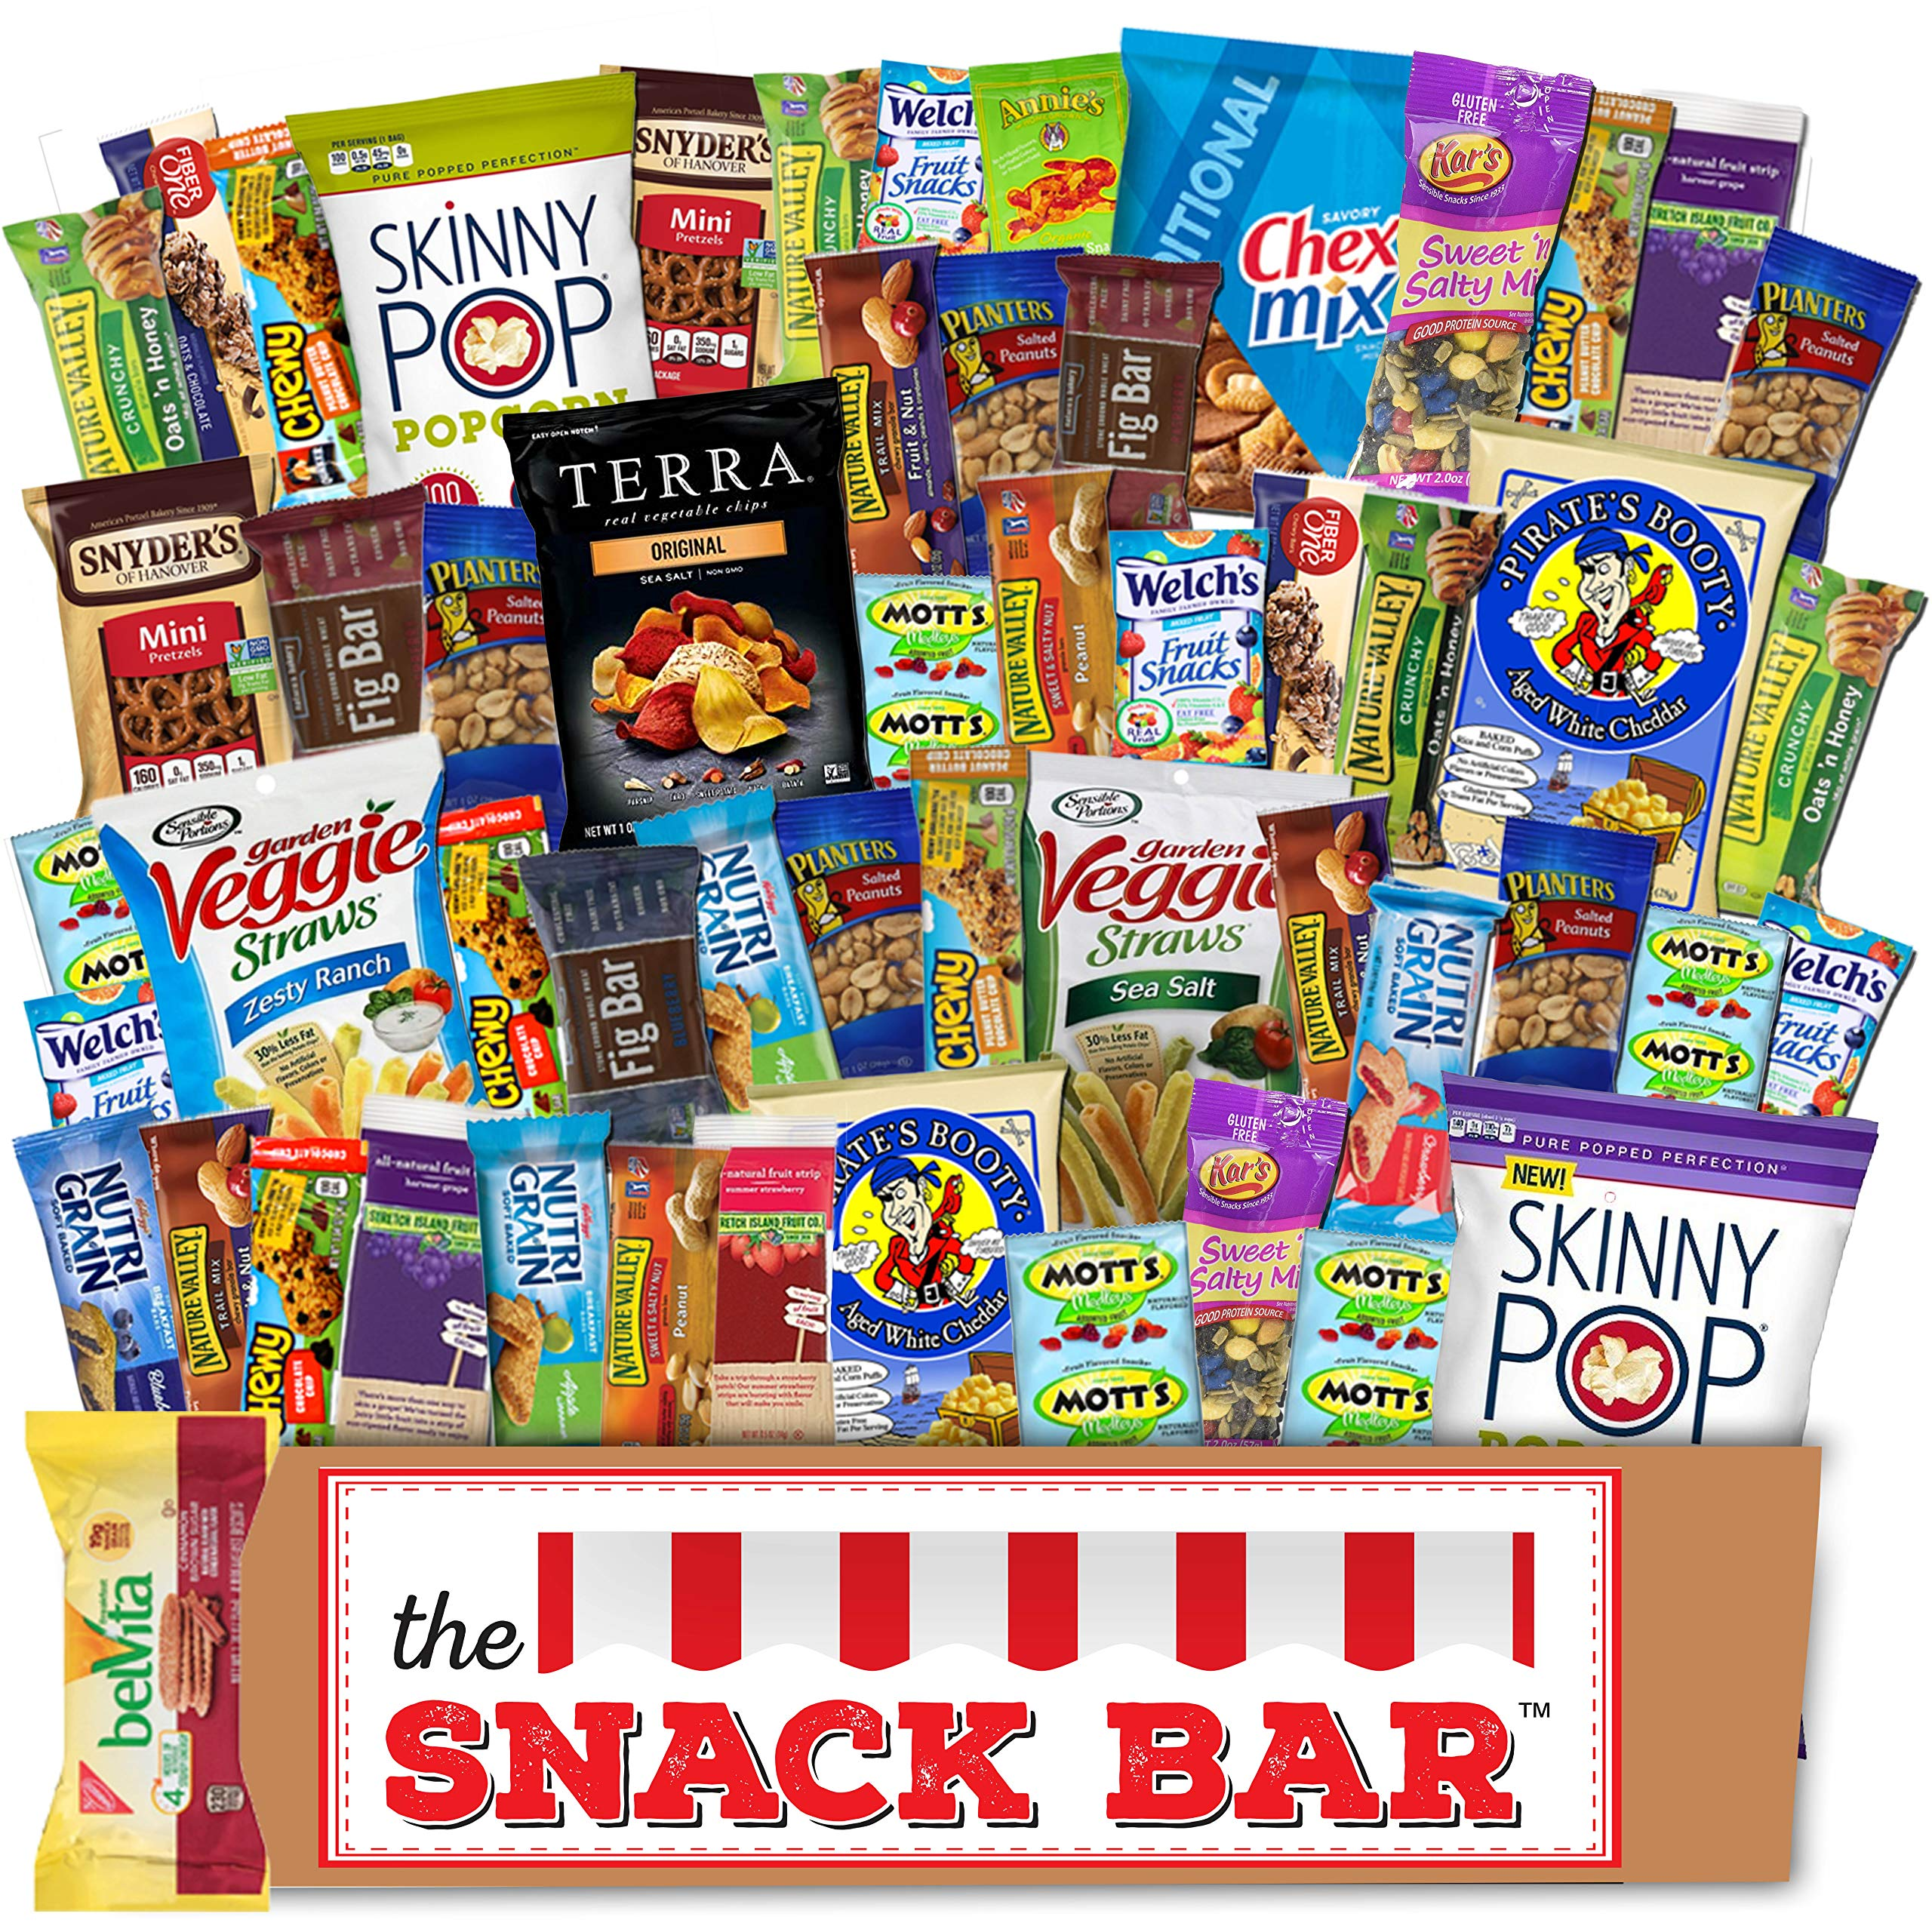 Healthy snack Care Package (52 count) A Gift crave Snack Box with a Variety of Healthy Snack Choices - Great for Office, College Military, Work, Students etc.